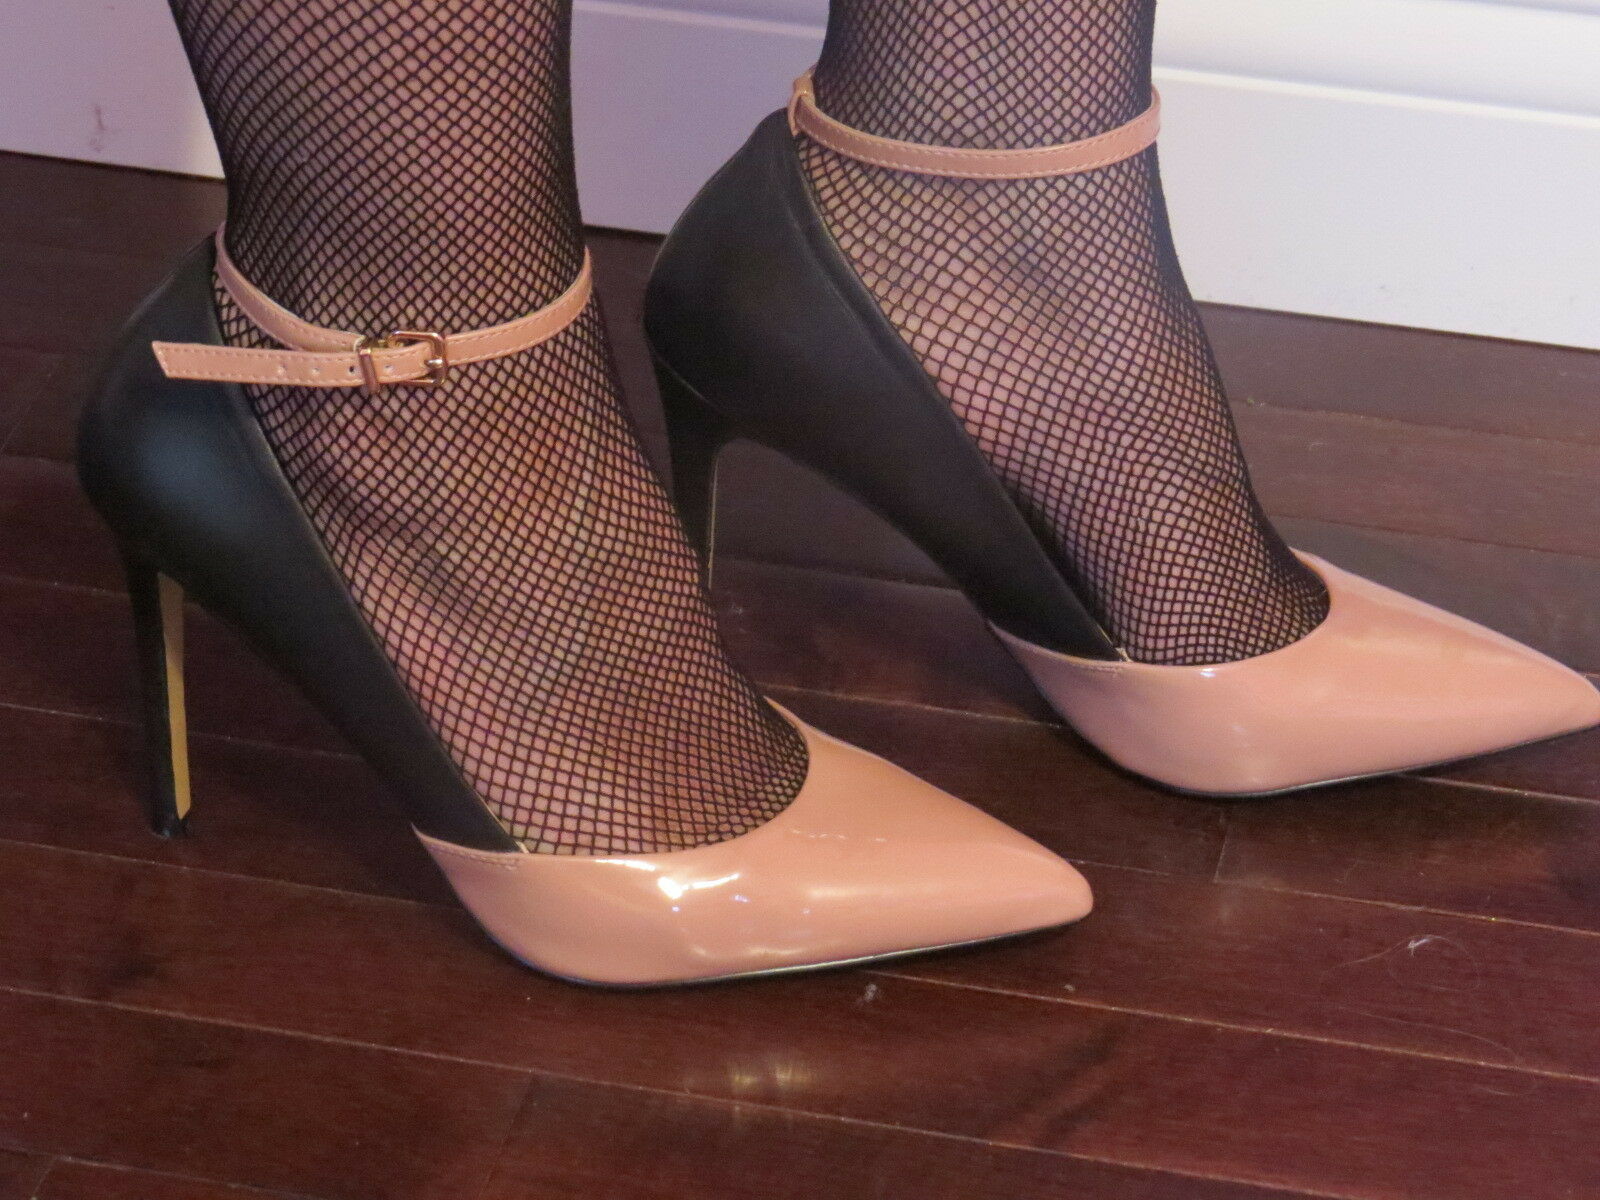 NEW!!! Victorias Secret!! Beige And Black Ankle Strap Heels Size:8B